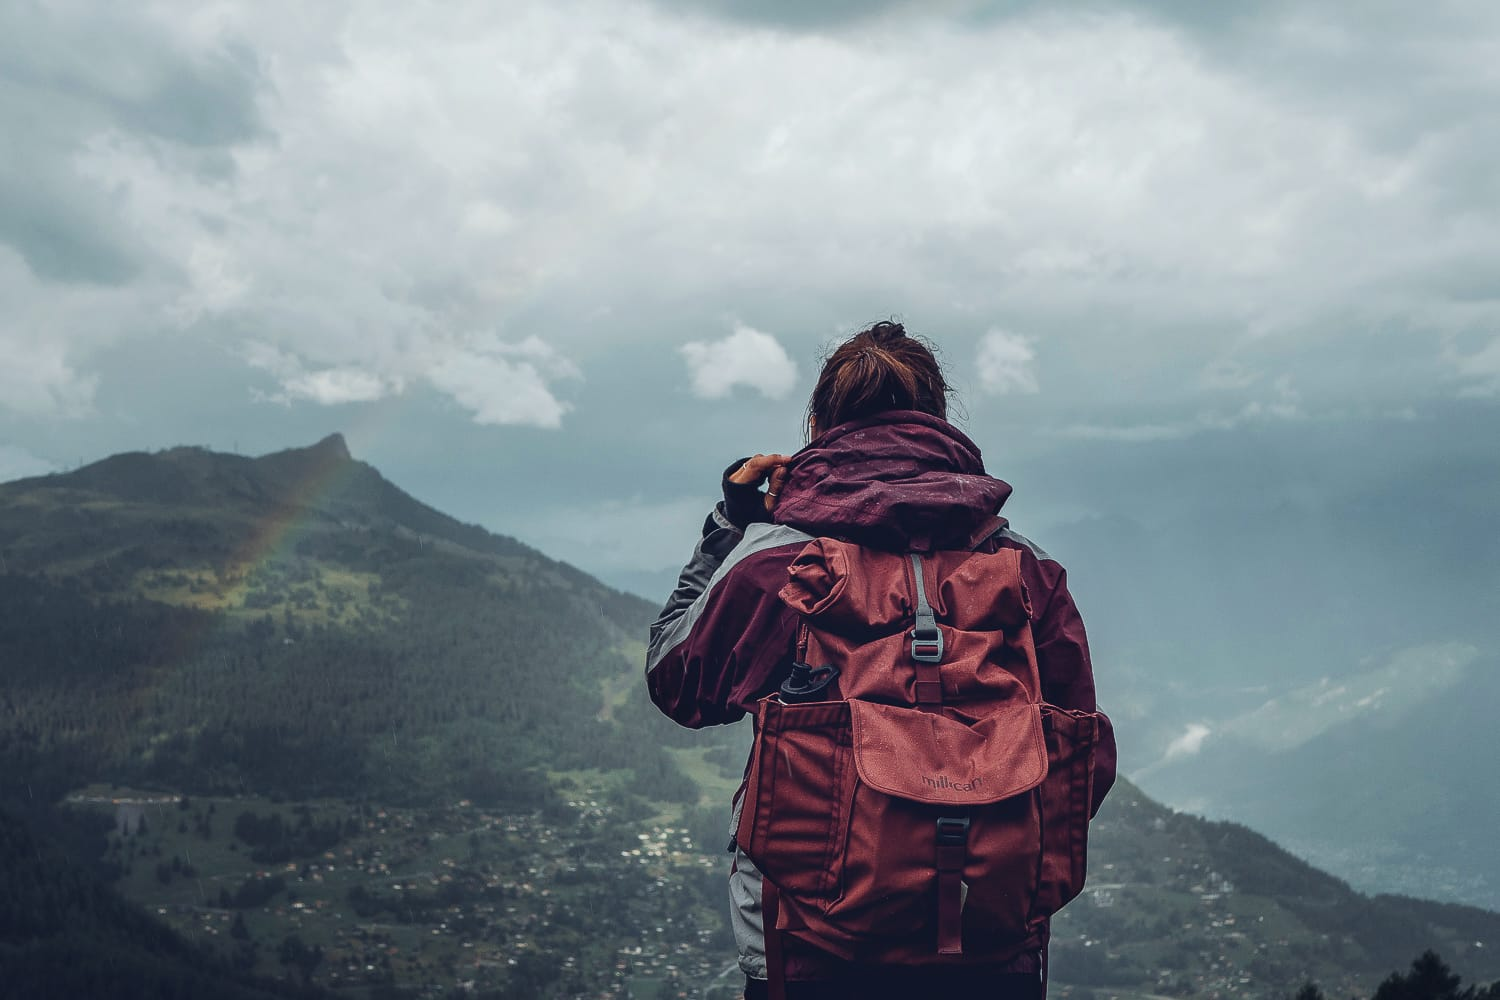 Woman with backpack standing on a mountain in the rain